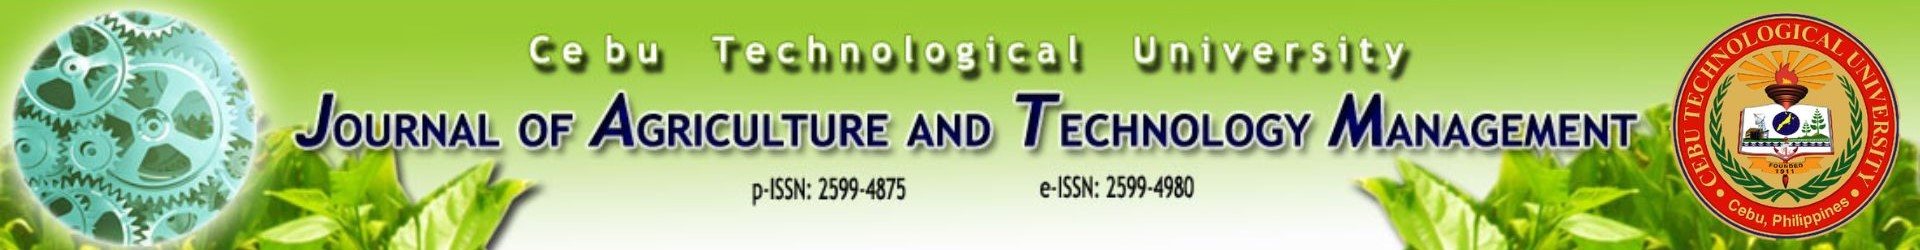 Journal of Agriculture and Technology Management - CTU